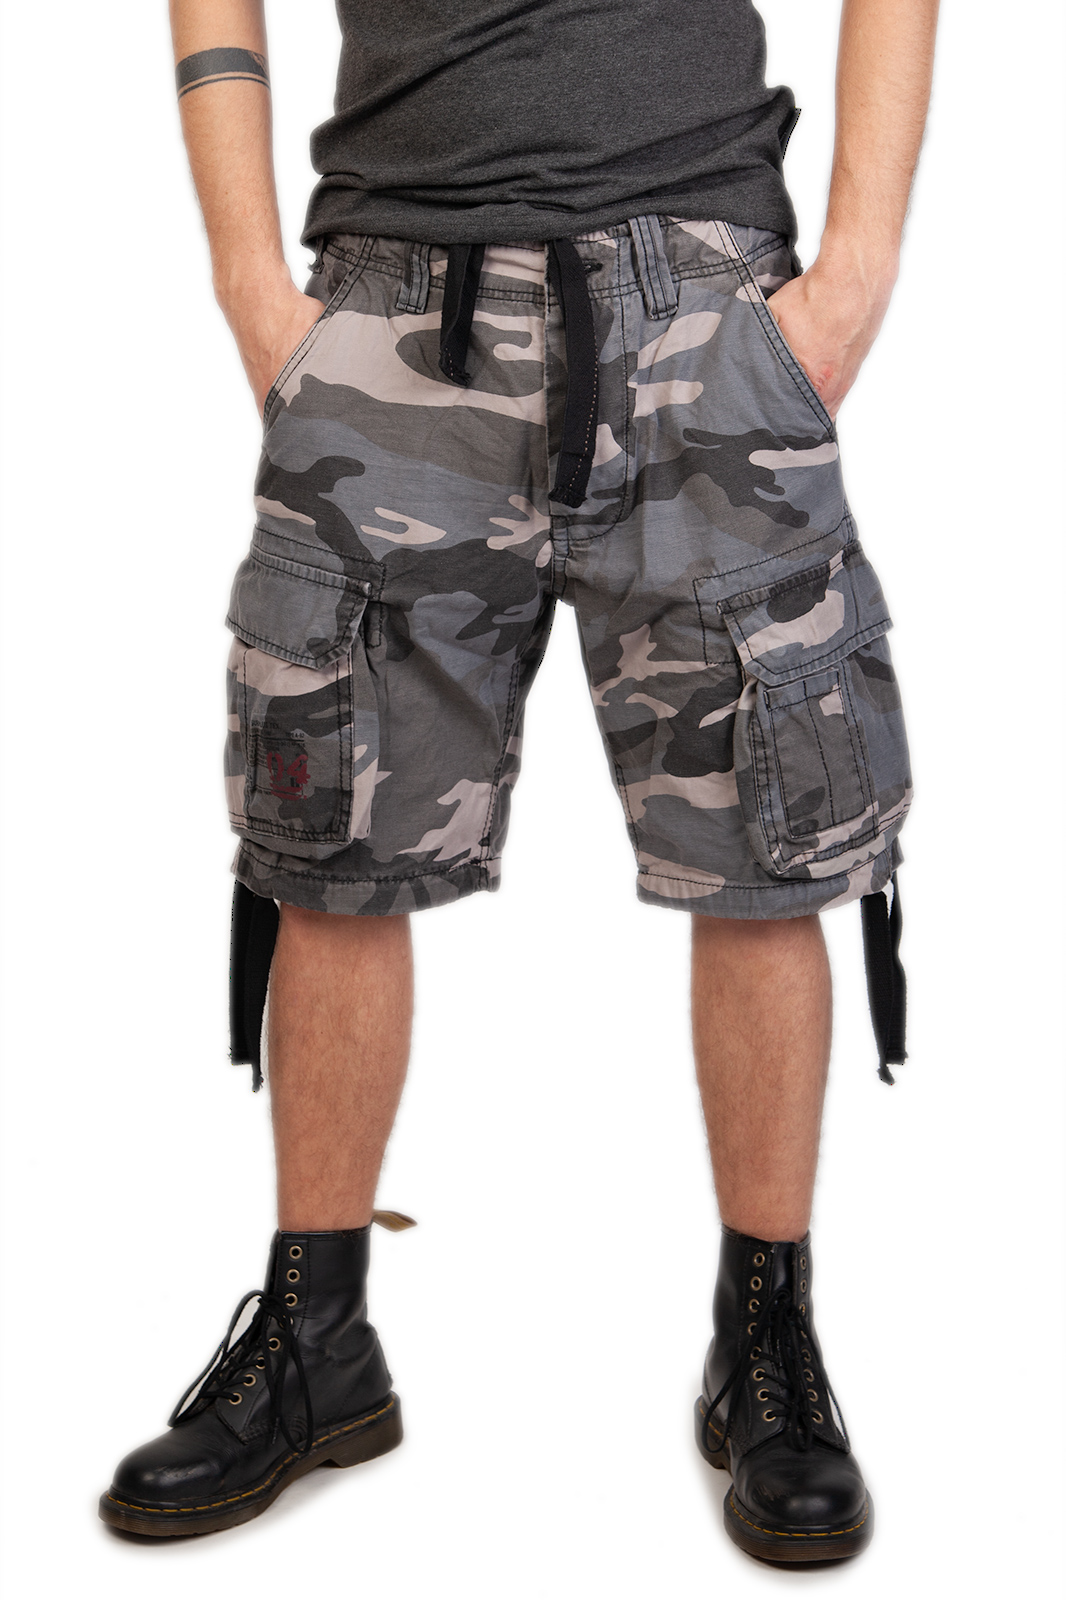 Airborne Vintage Shorts Night Camo Camo